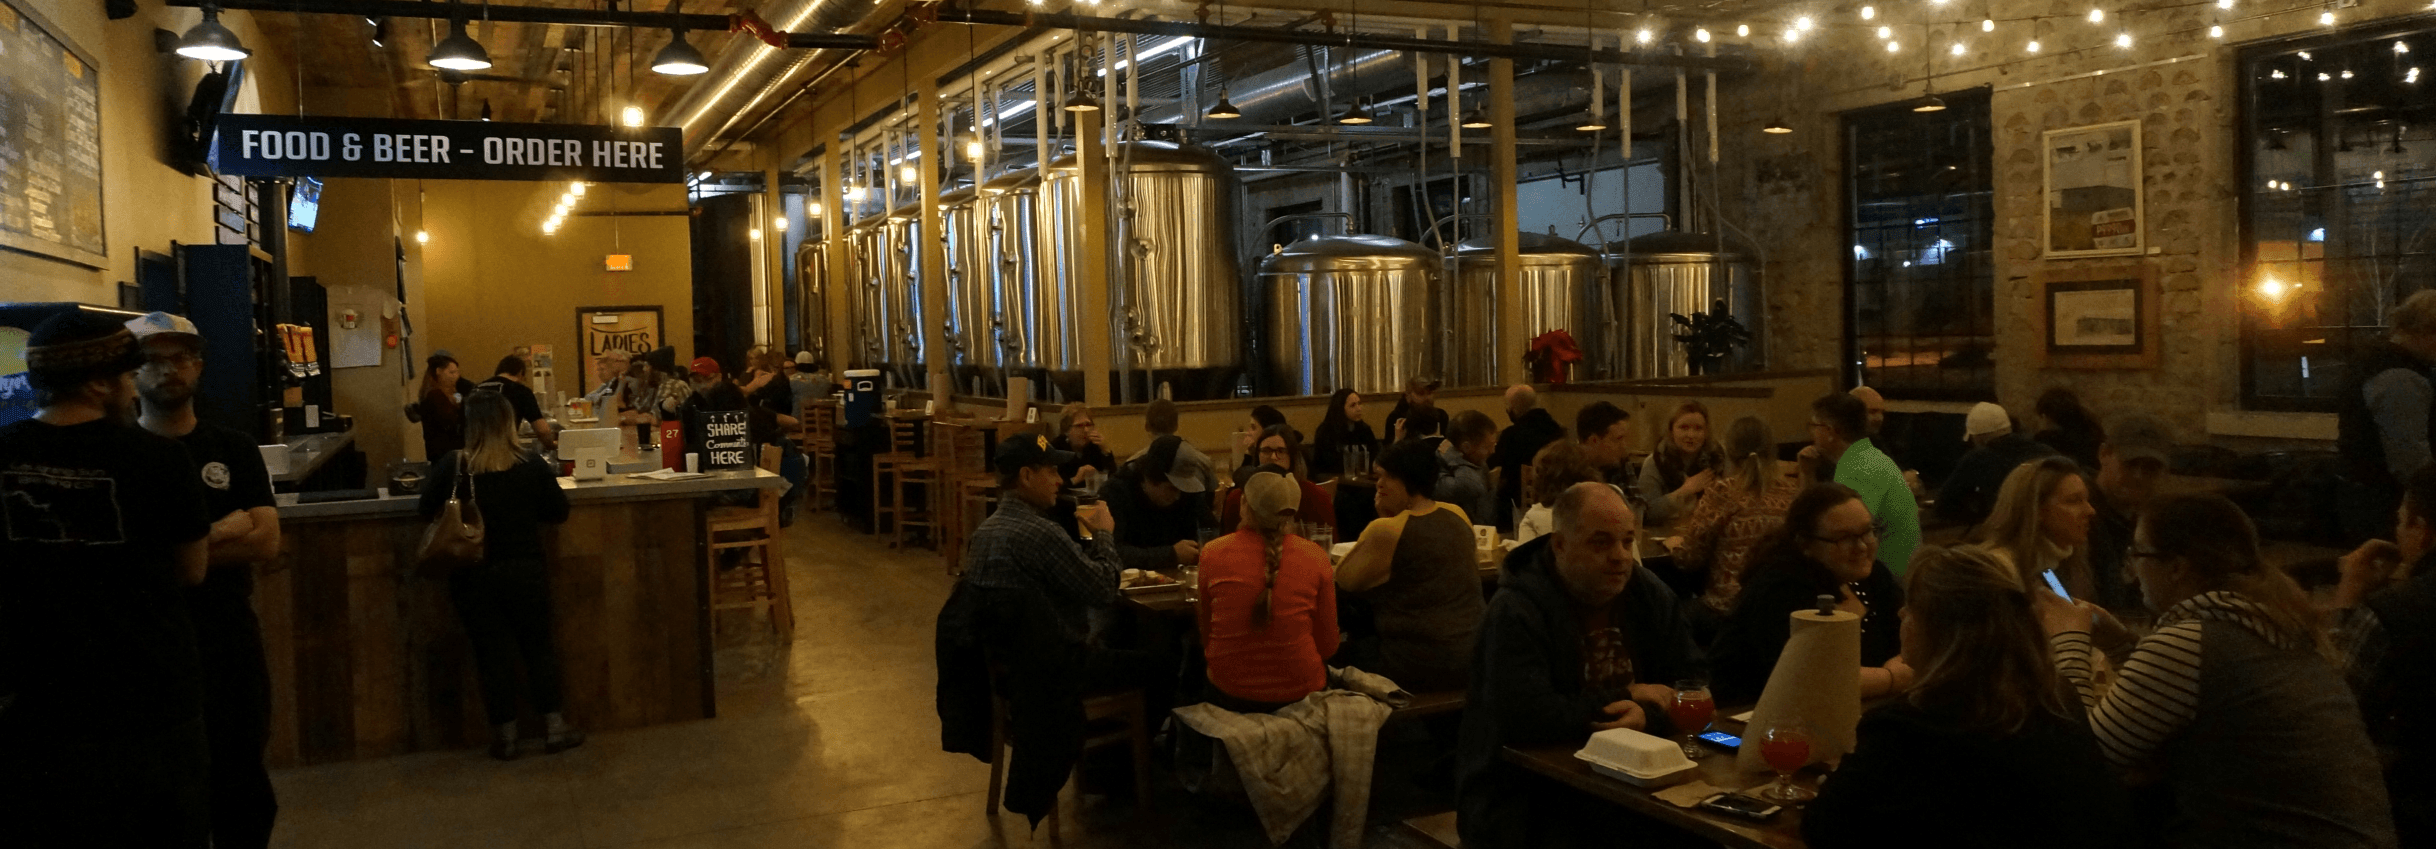 Laughing Sun Brewery - Photo Credit:  Daniel Nairn